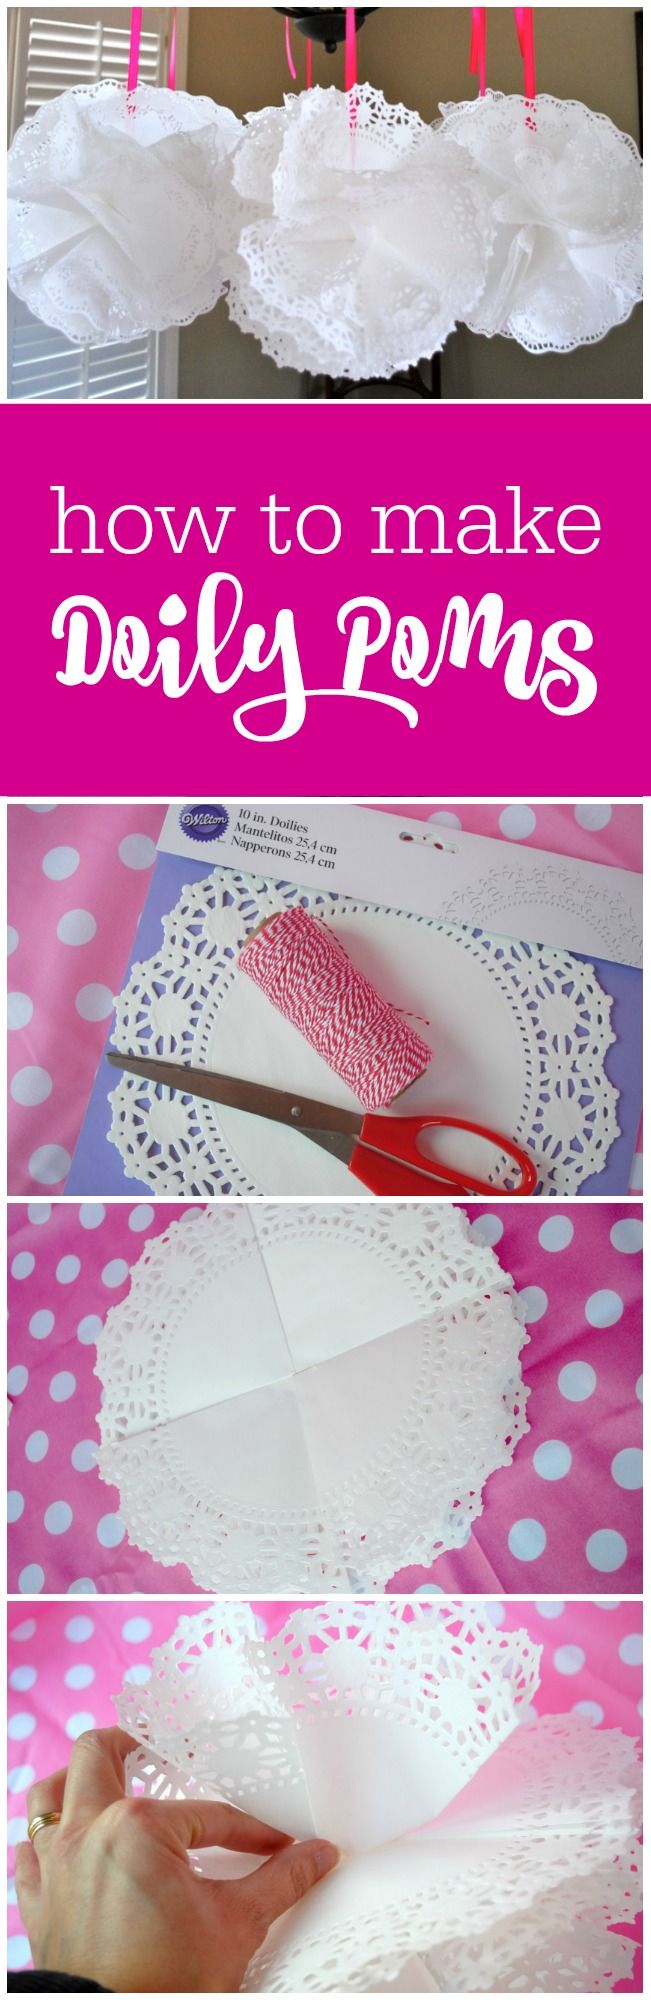 How to make doily poms - it's as easy as folding and hot gluing - The Party Teacher | http://thepartyteacher.com/2013/01/23/tutorial-paper-doily-poms/